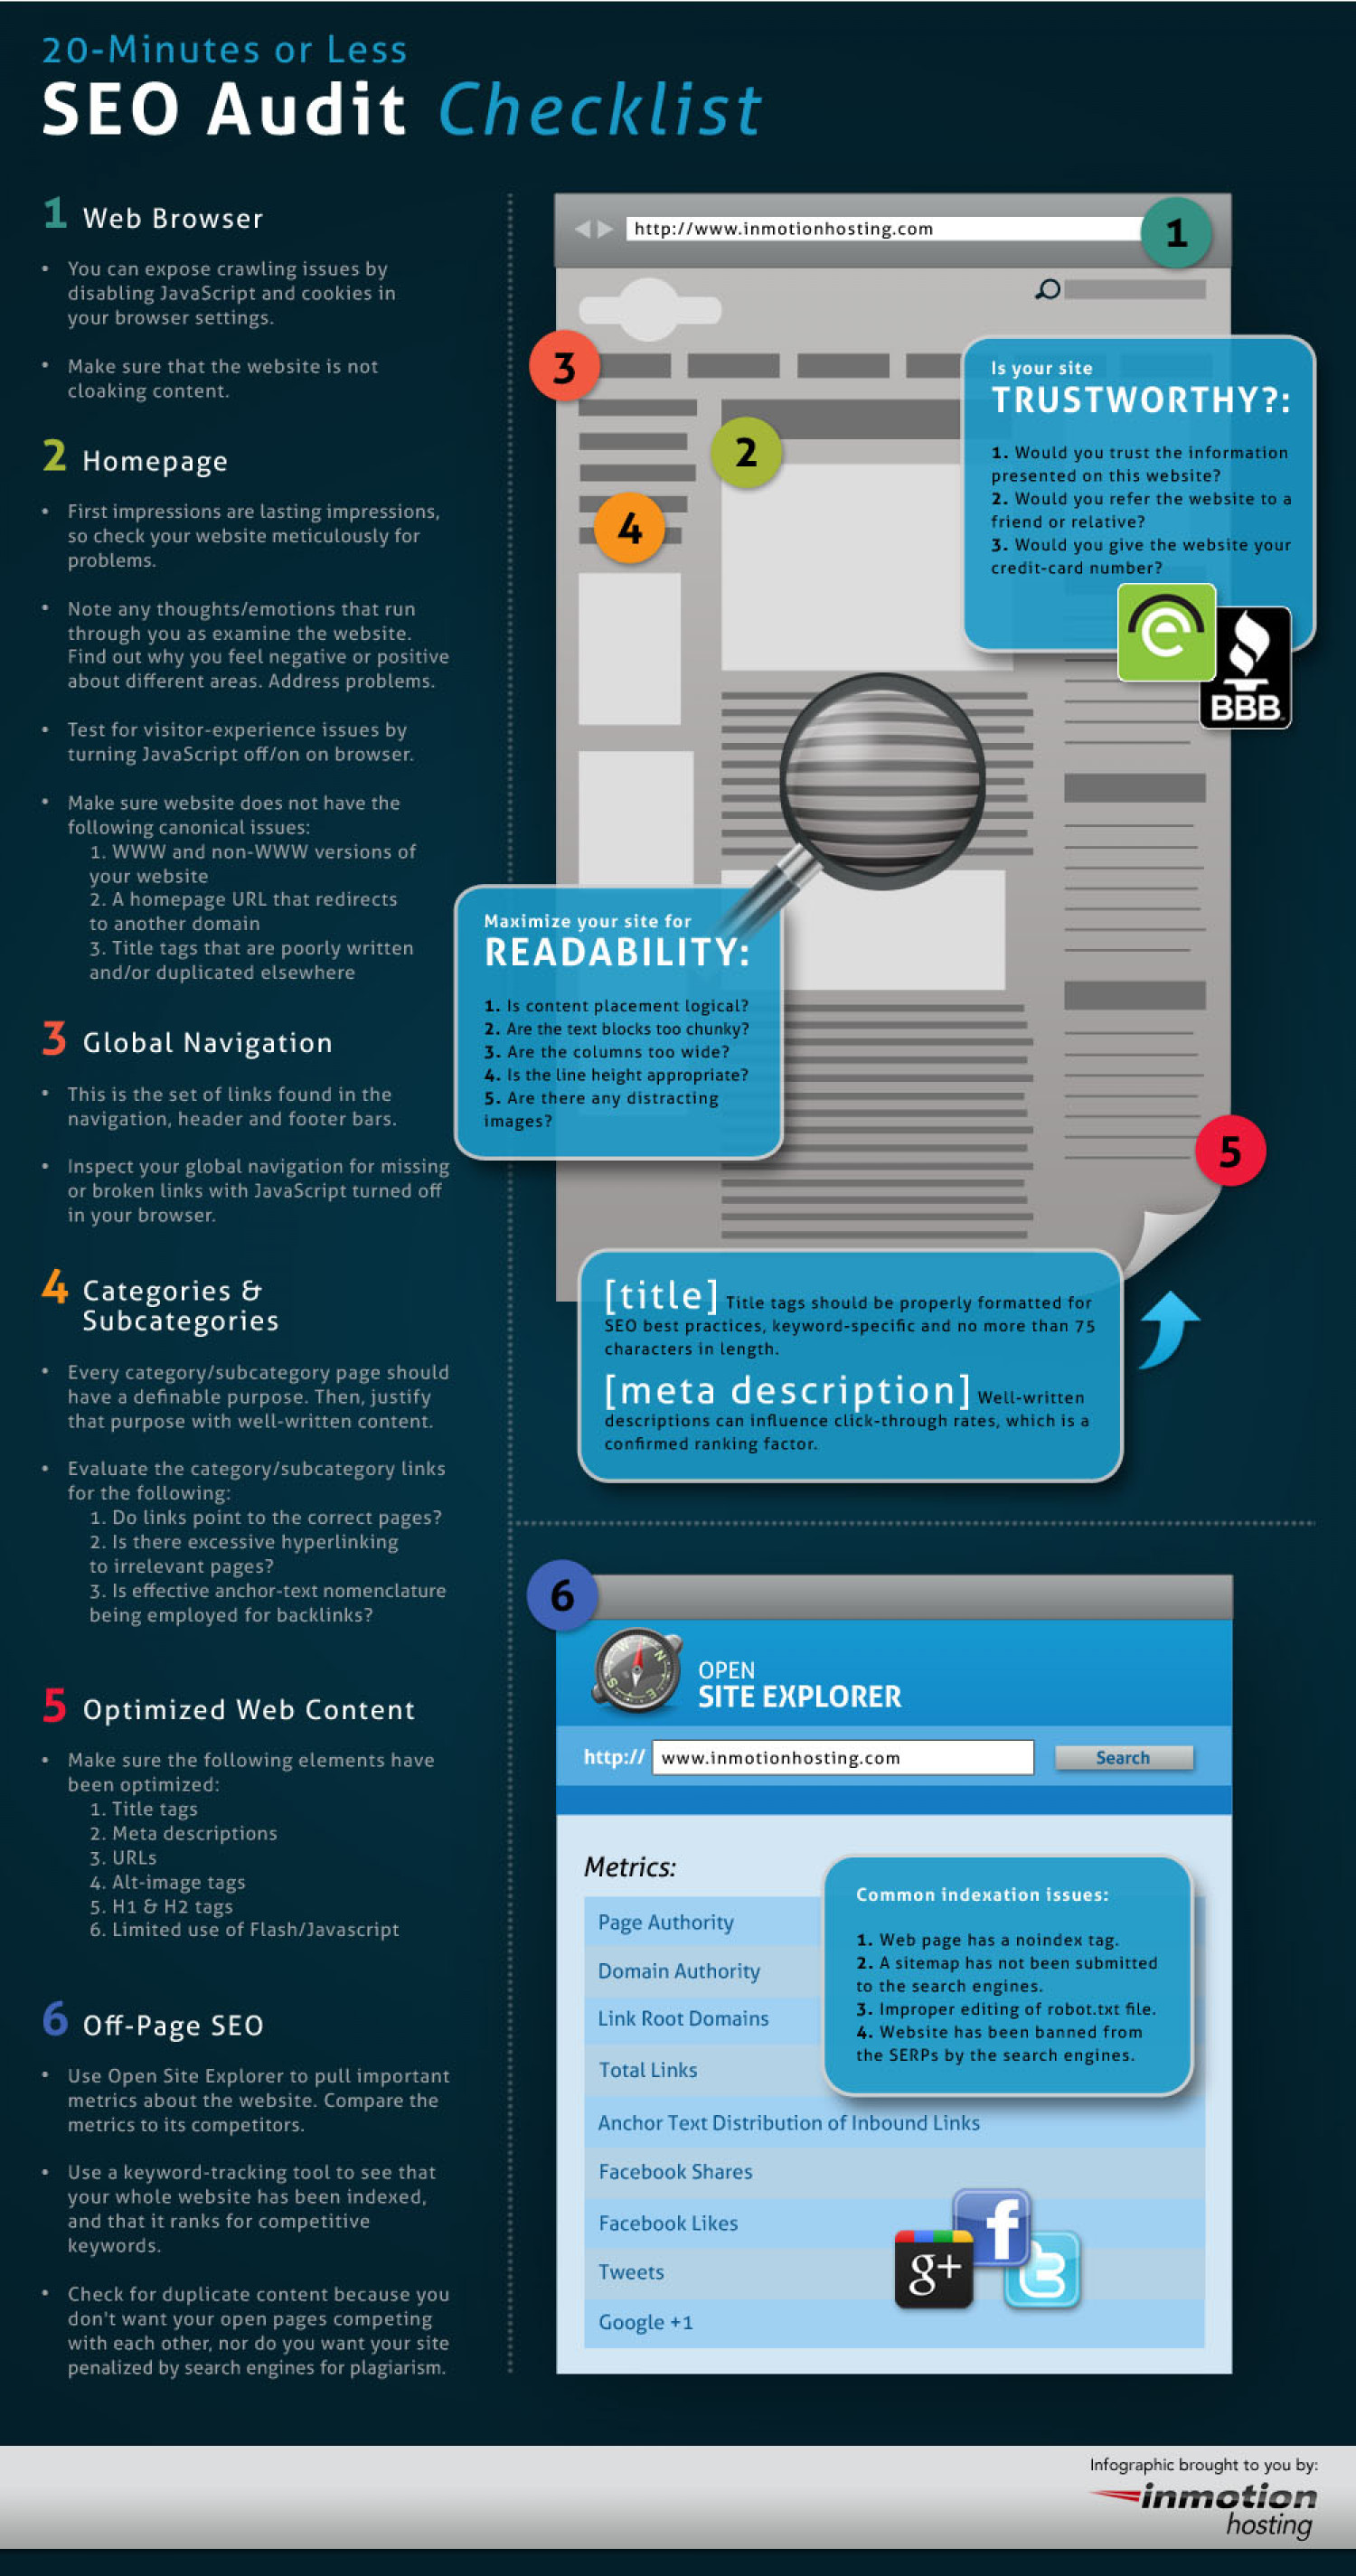 The 20-Minutes or Less SEO Audit Checklist Infographic